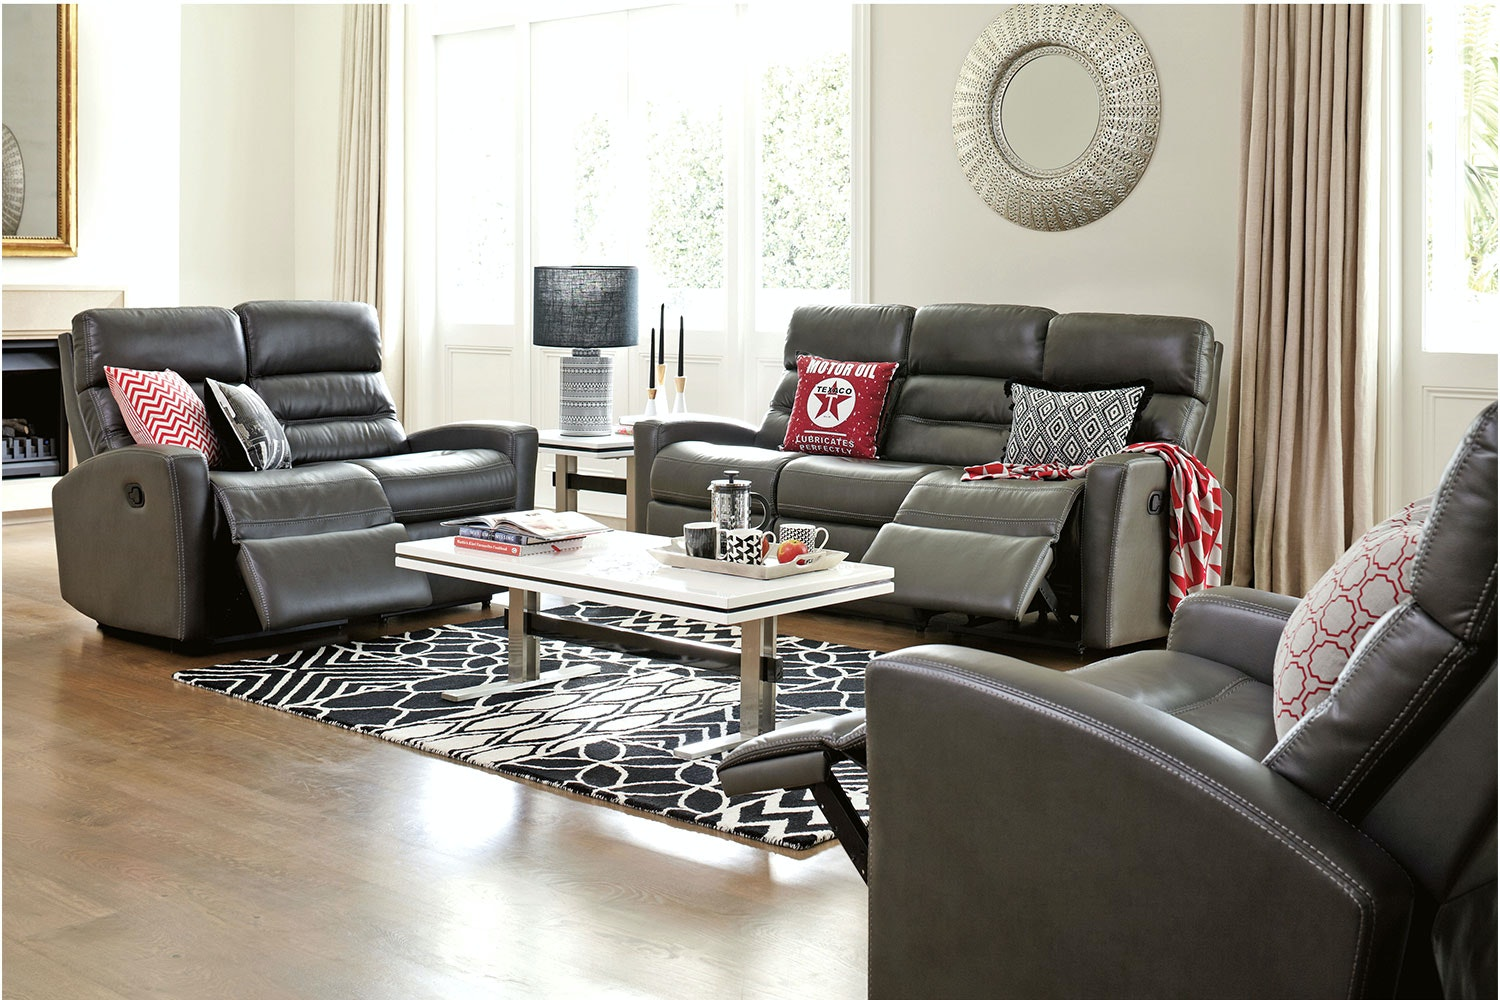 Corsica 3 Piece Recliner Lounge Suite by Synargy